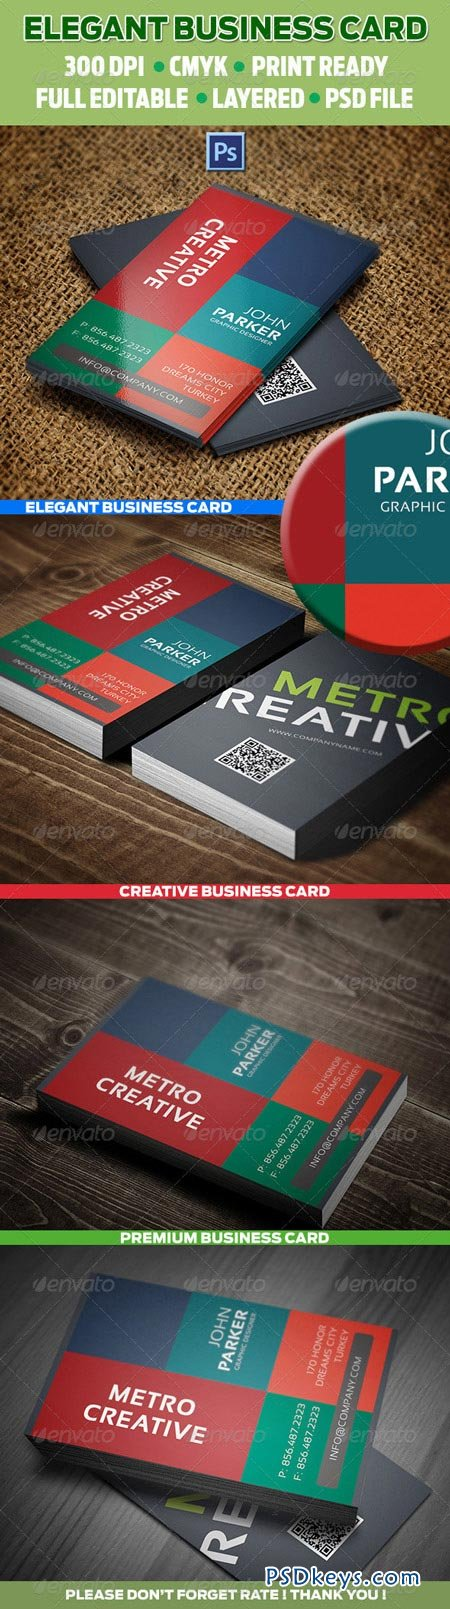 Creative Business Cards 18 3510594